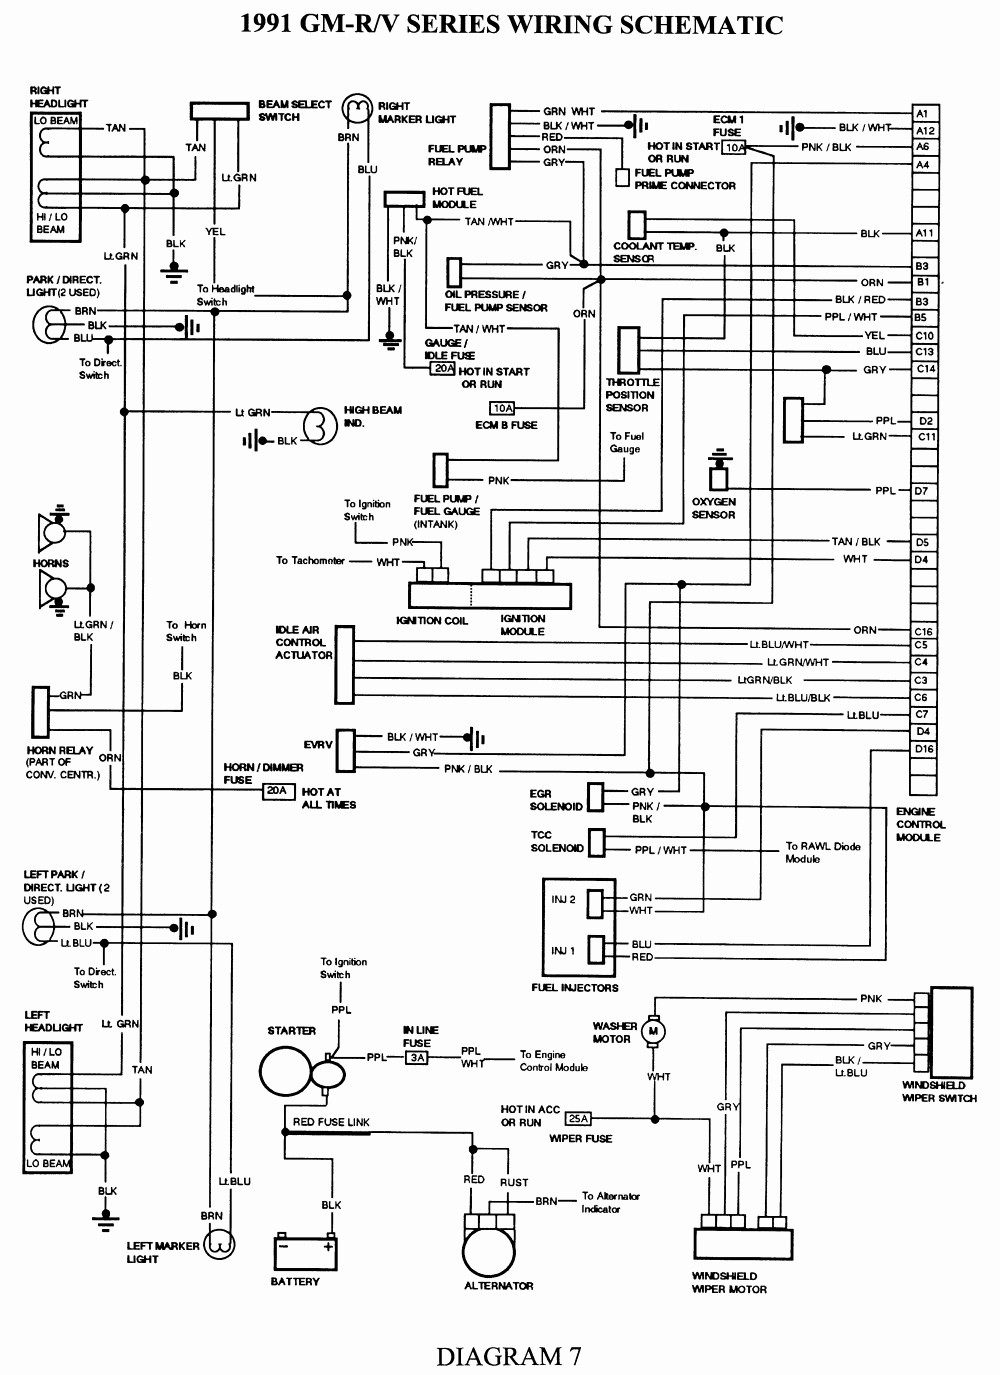 1993 Chevy Suburban Fuel Pump Wire Diagram Explore Schematic Vega Wiring Diagrams 1990 1500 Unique Image Rh Mainetreasurechest Com